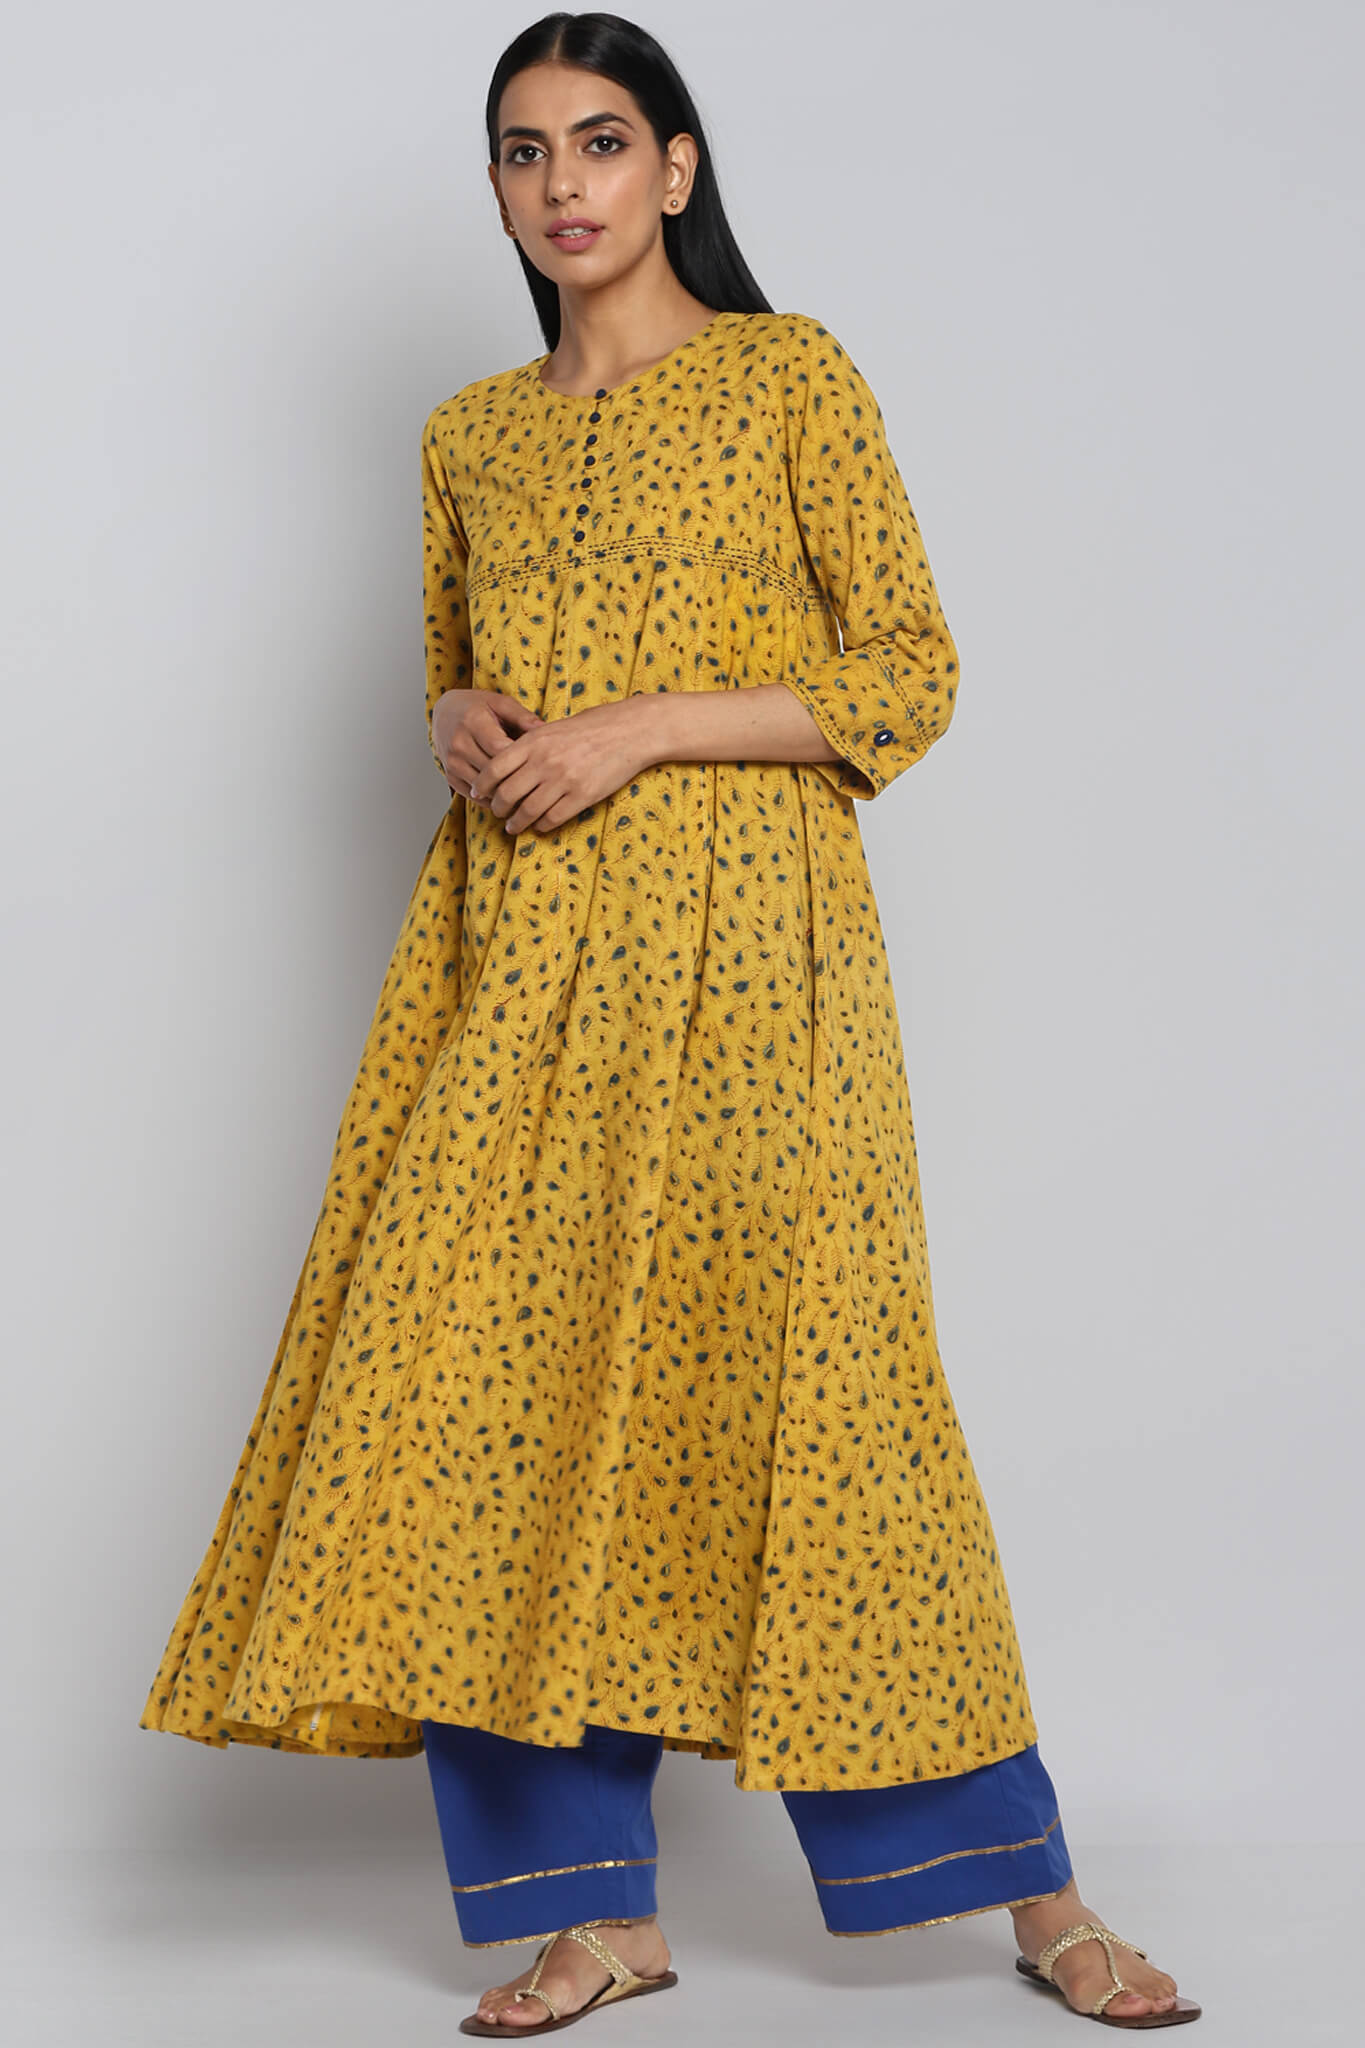 Hand block printed yellow ajrakh with indigo motifs cotton anarkali with round neck and cream hand embroidery and mirror work on  bust and border